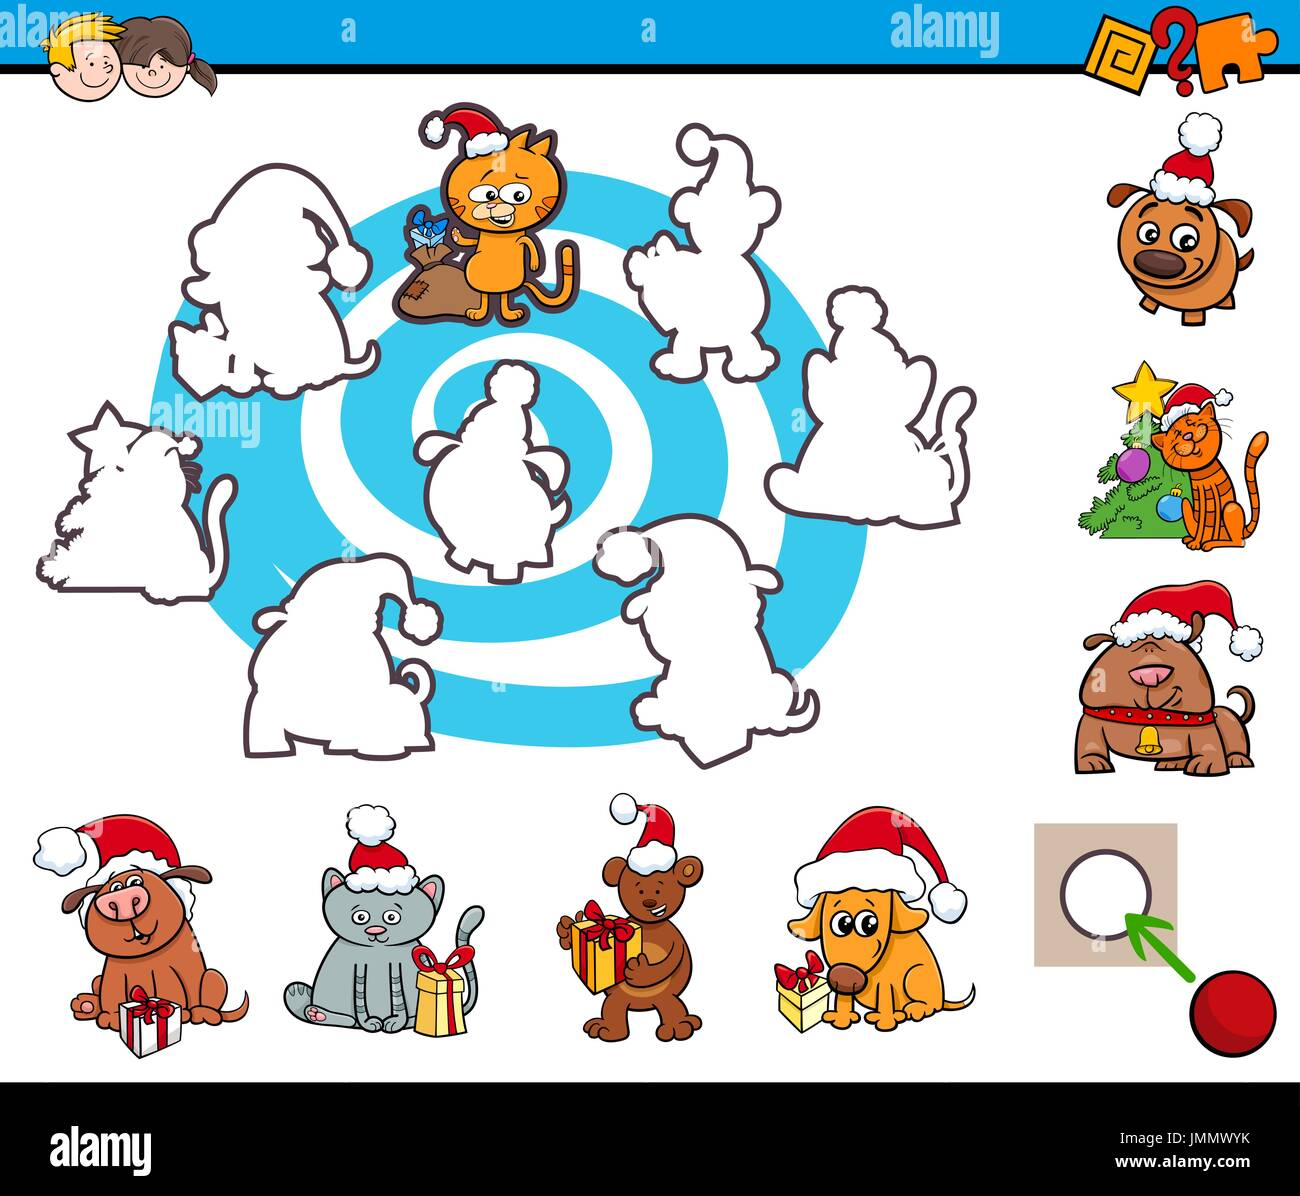 Cartoon Illustration of Educational Activity for Preschool Children ...